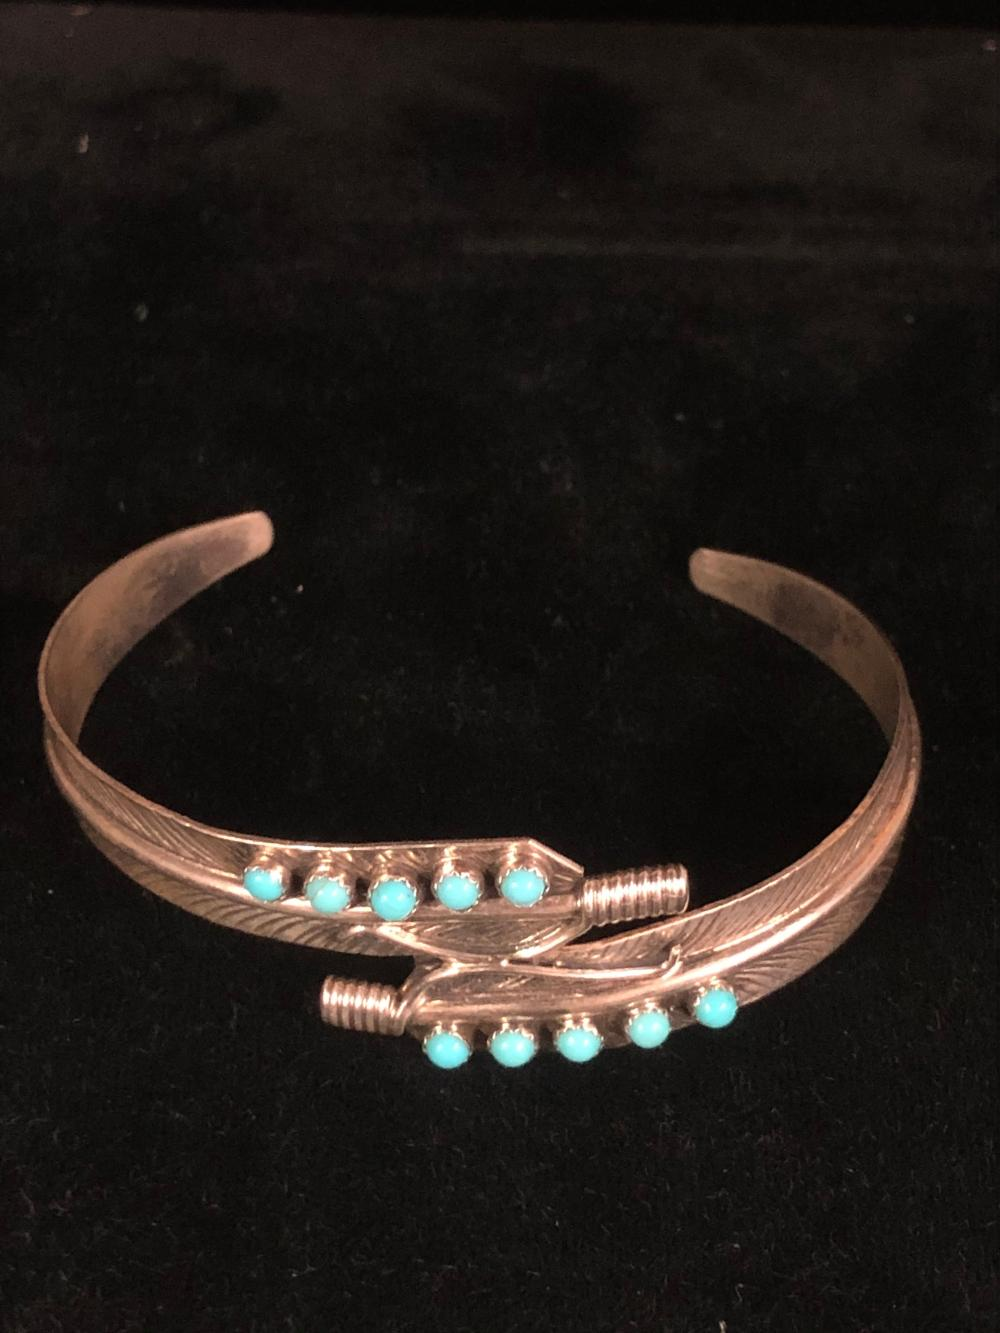 Feather sterling silver cuff bracelet with turquoise